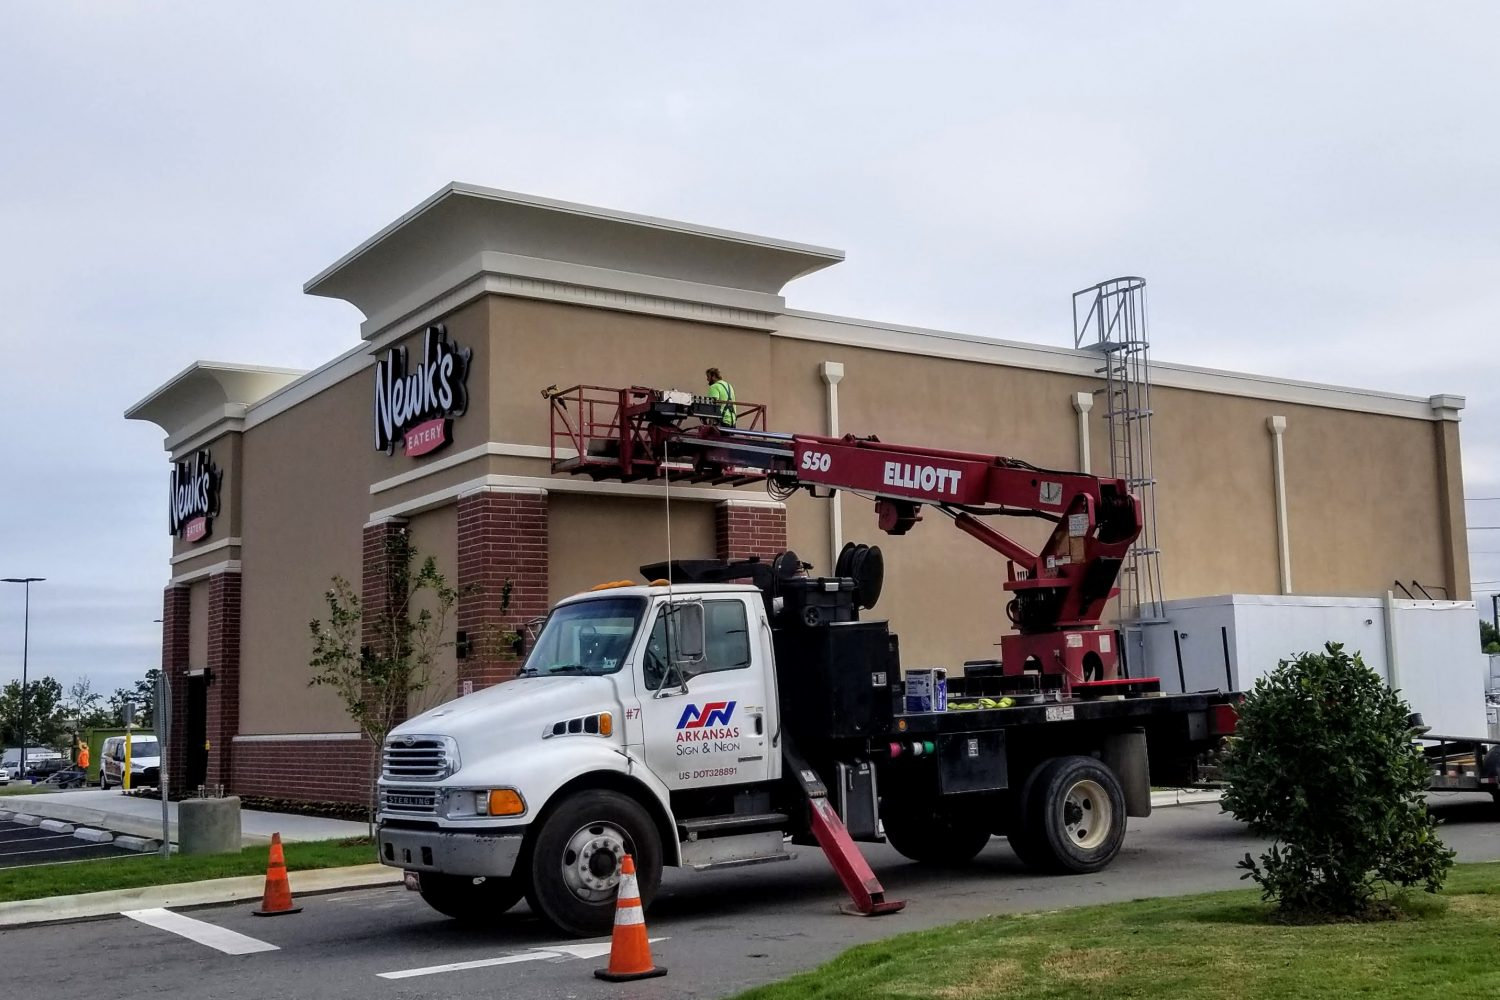 Newk S Hiring Immediately Opening Soon Panda Express Also Coming To Benton